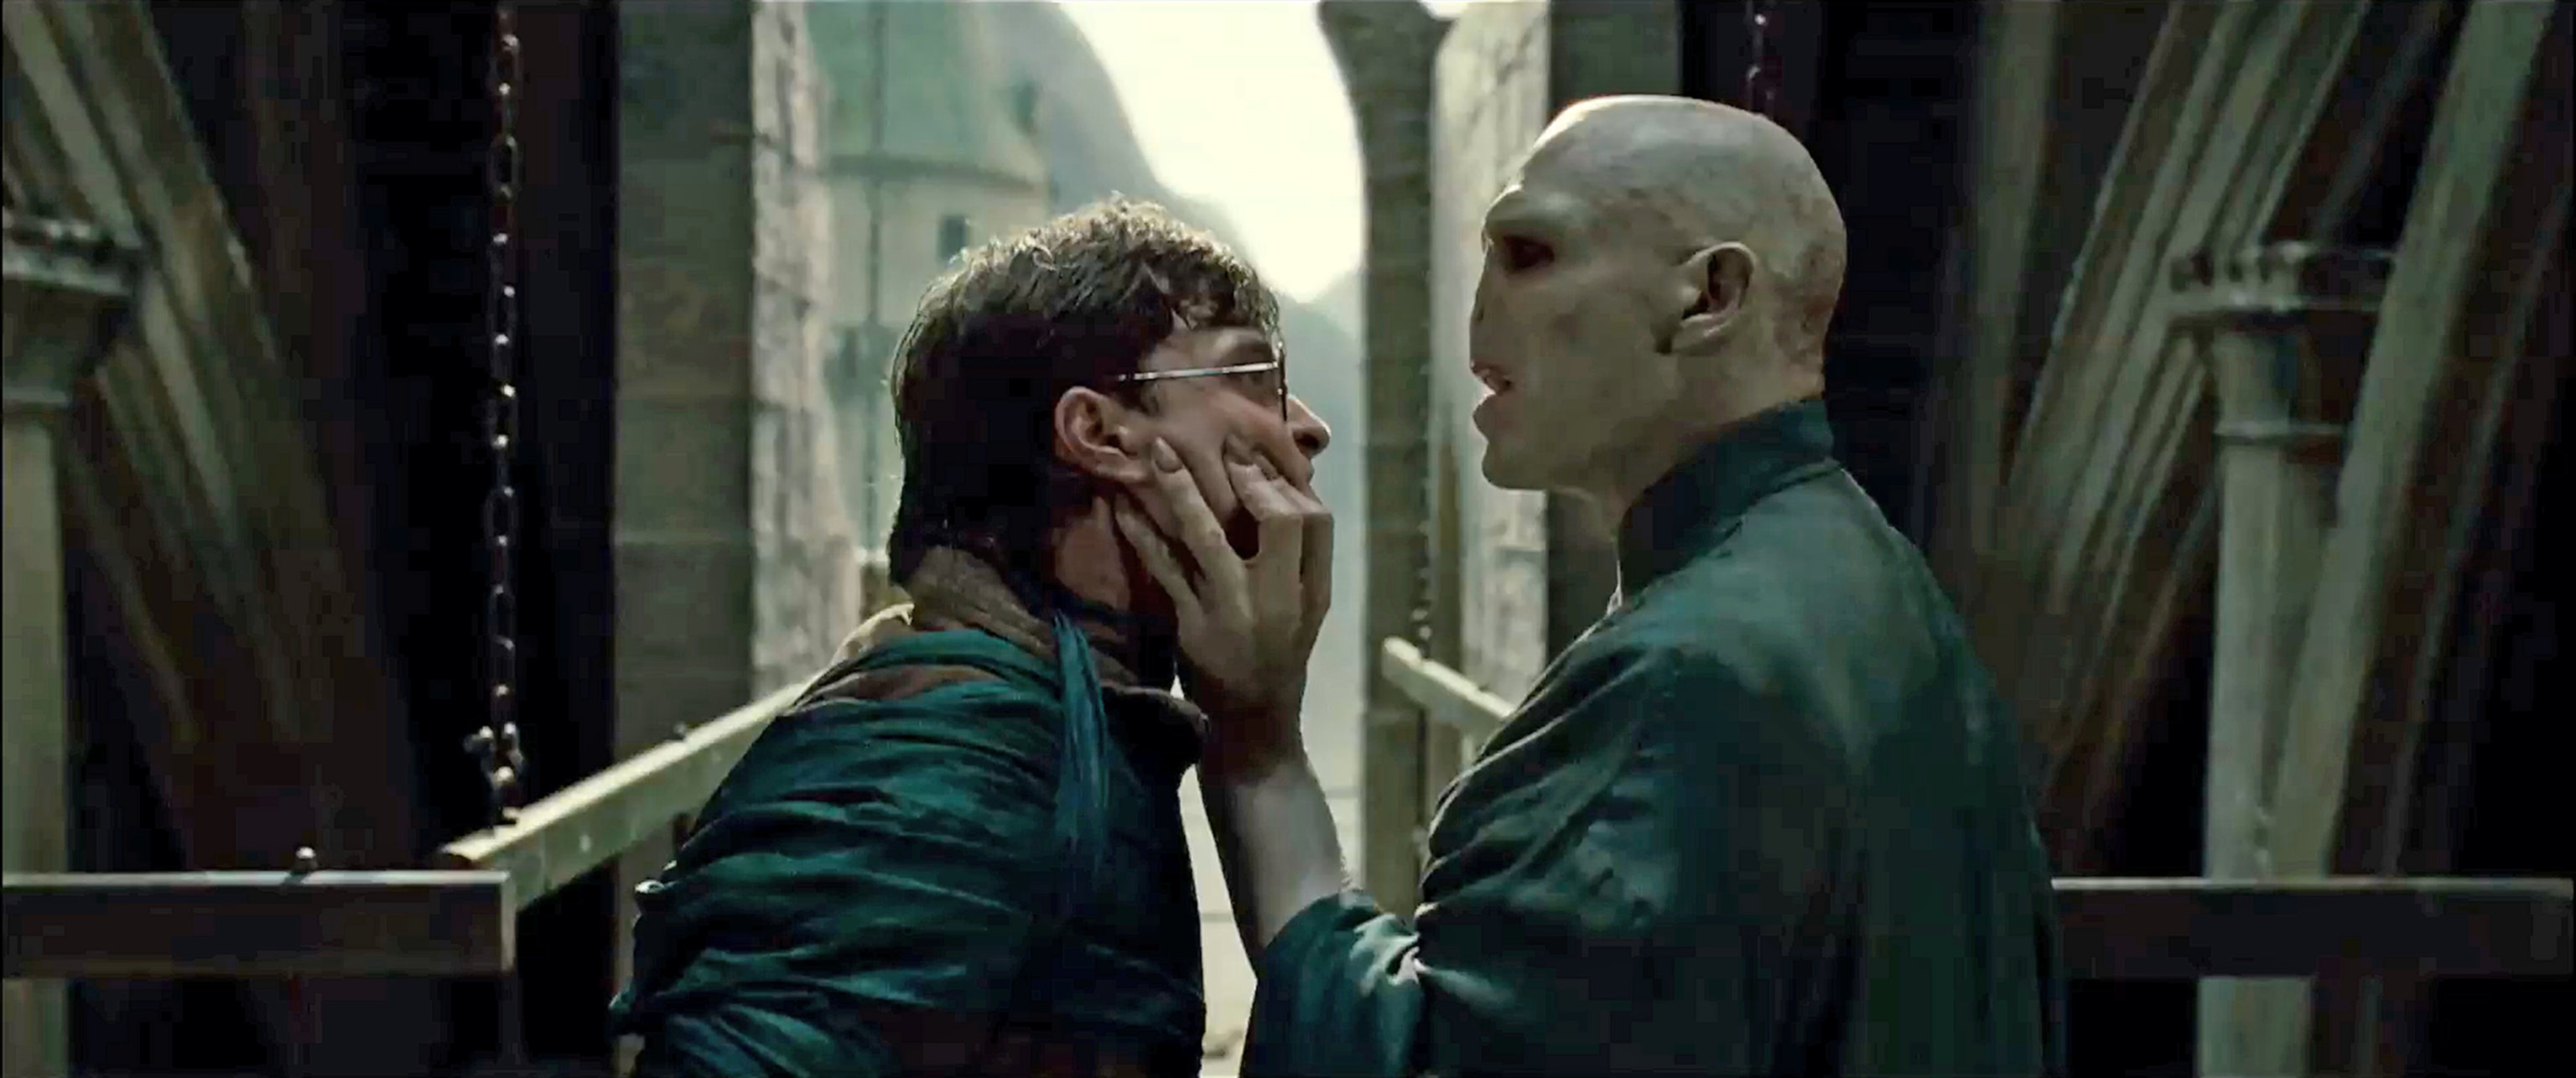 Voldemort grabbing Harry's face in the Deathly Hallows part 2